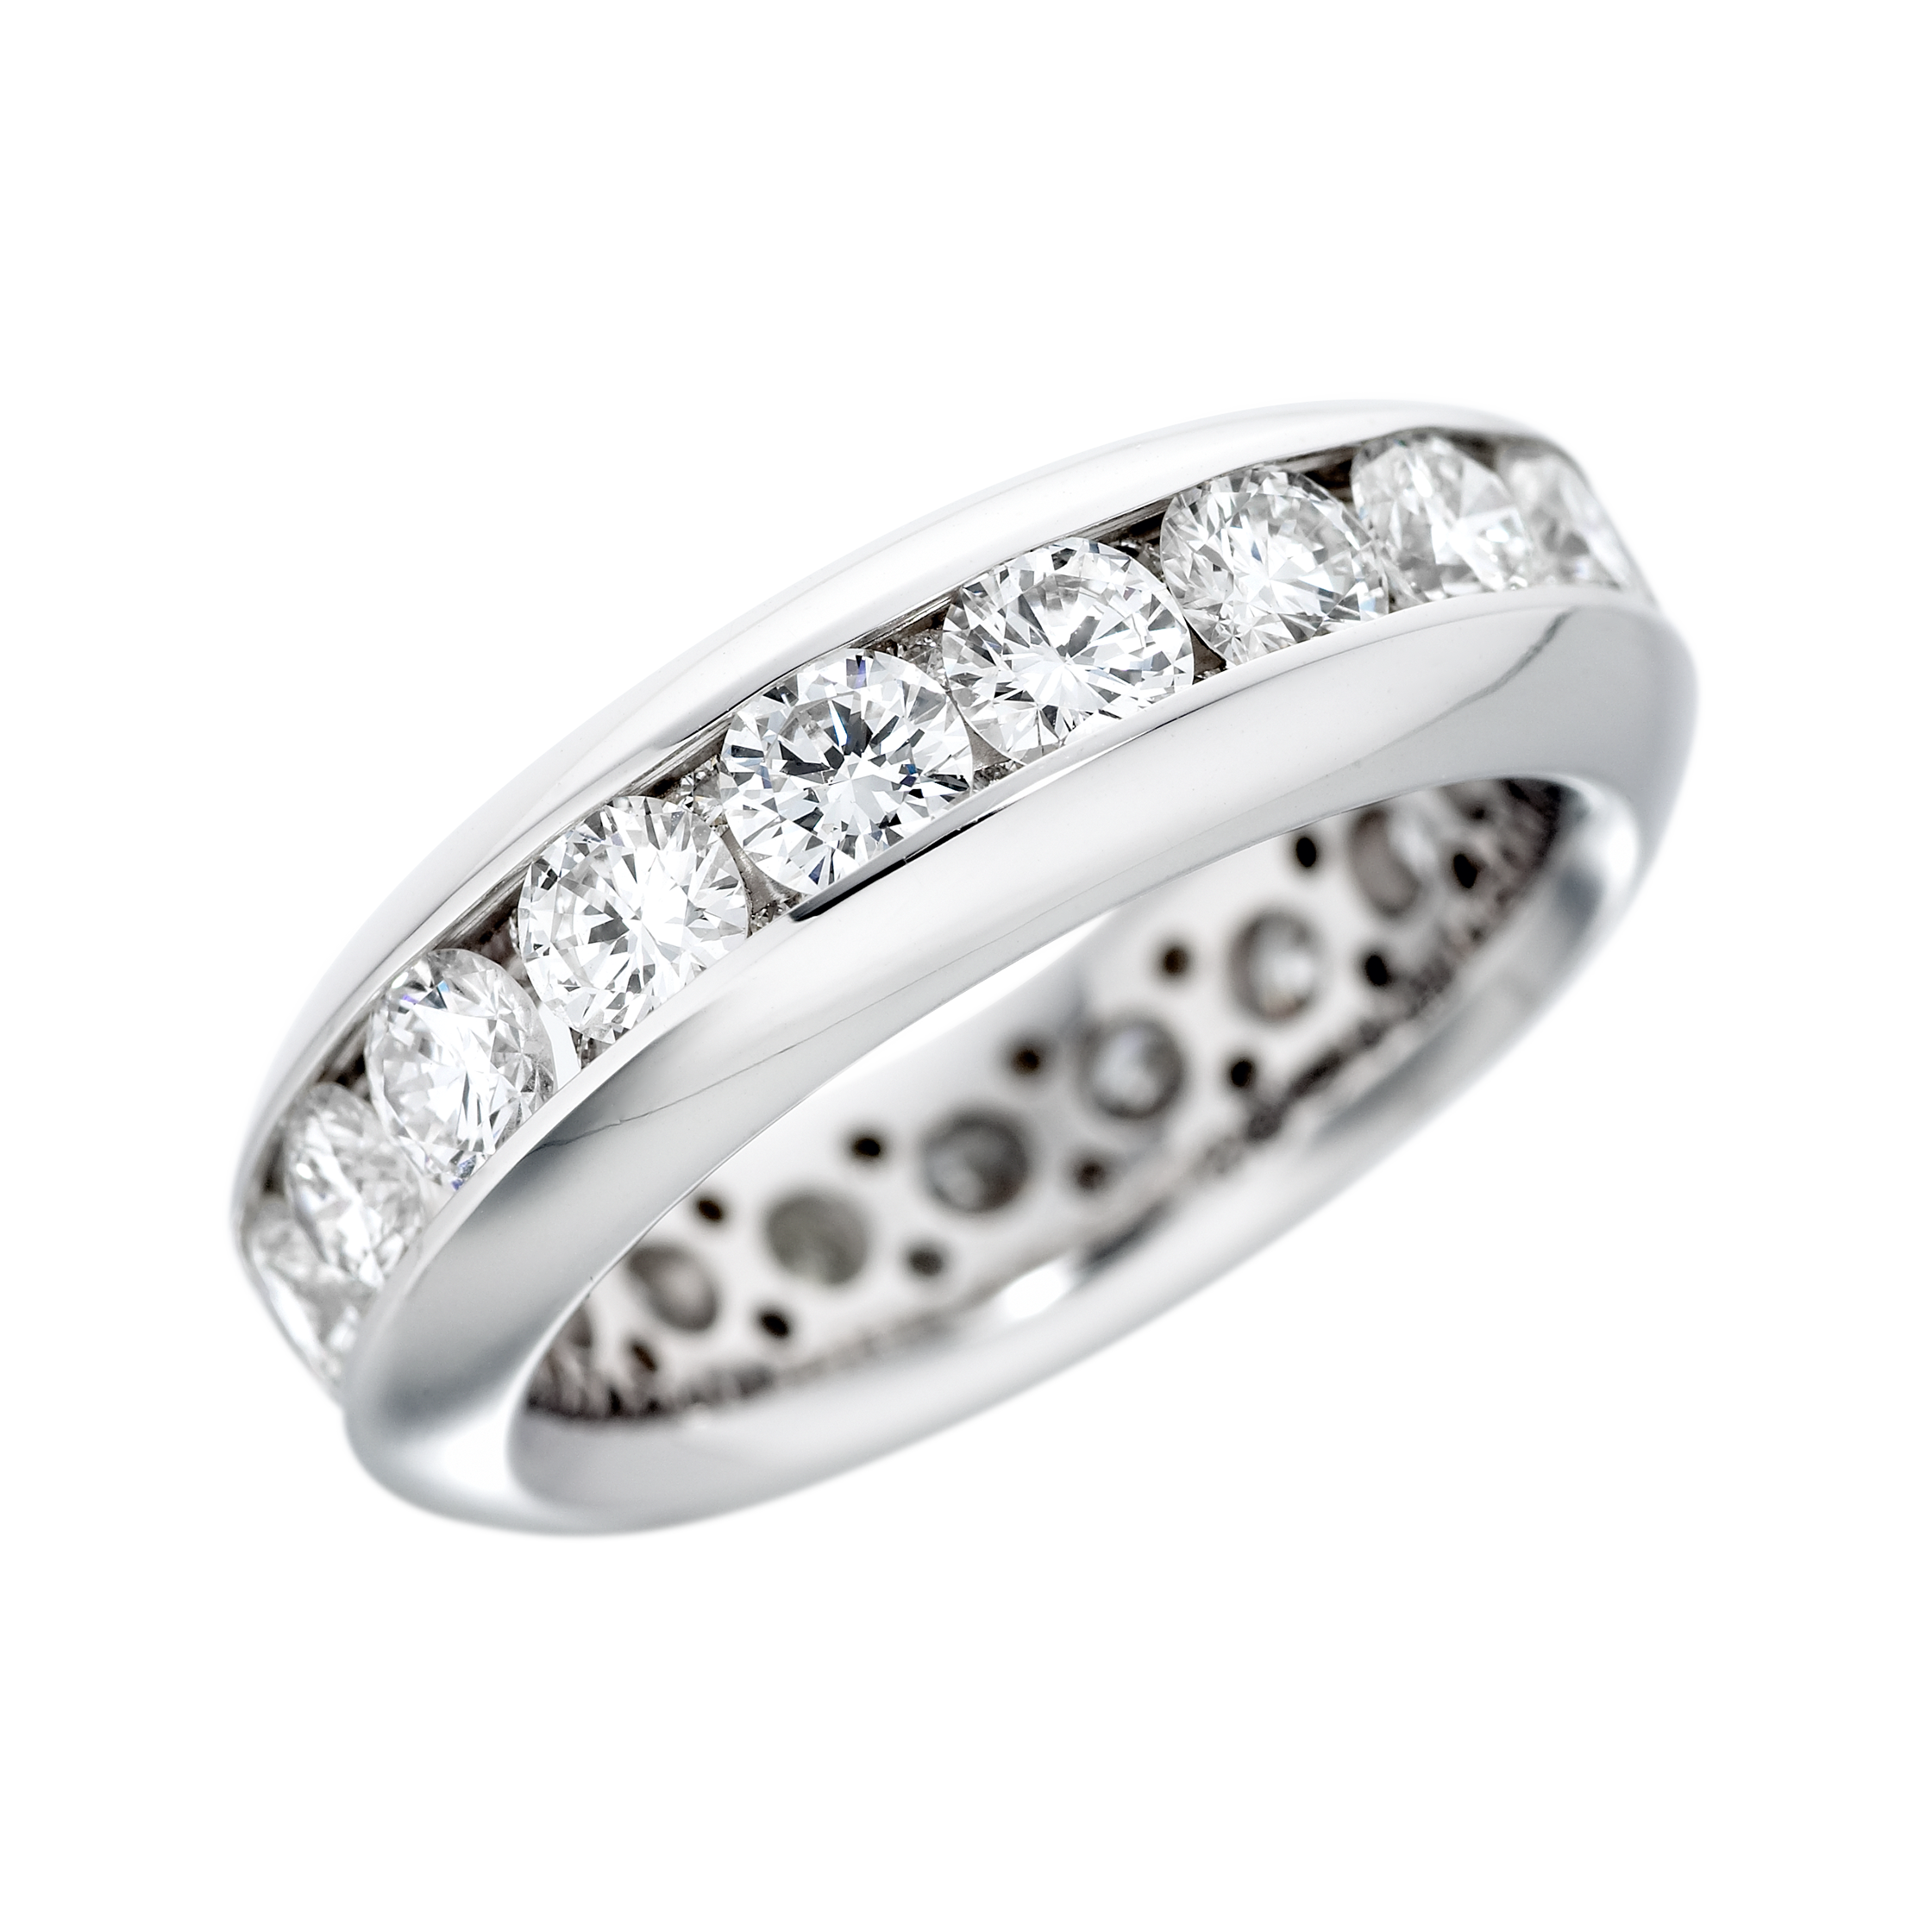 engagements u anniversary bands detail plus images ring partial pinterest the halo engagement ct wedding channel french basket my split august set on shank avc best and cushion band thin rings pave vintage daisy